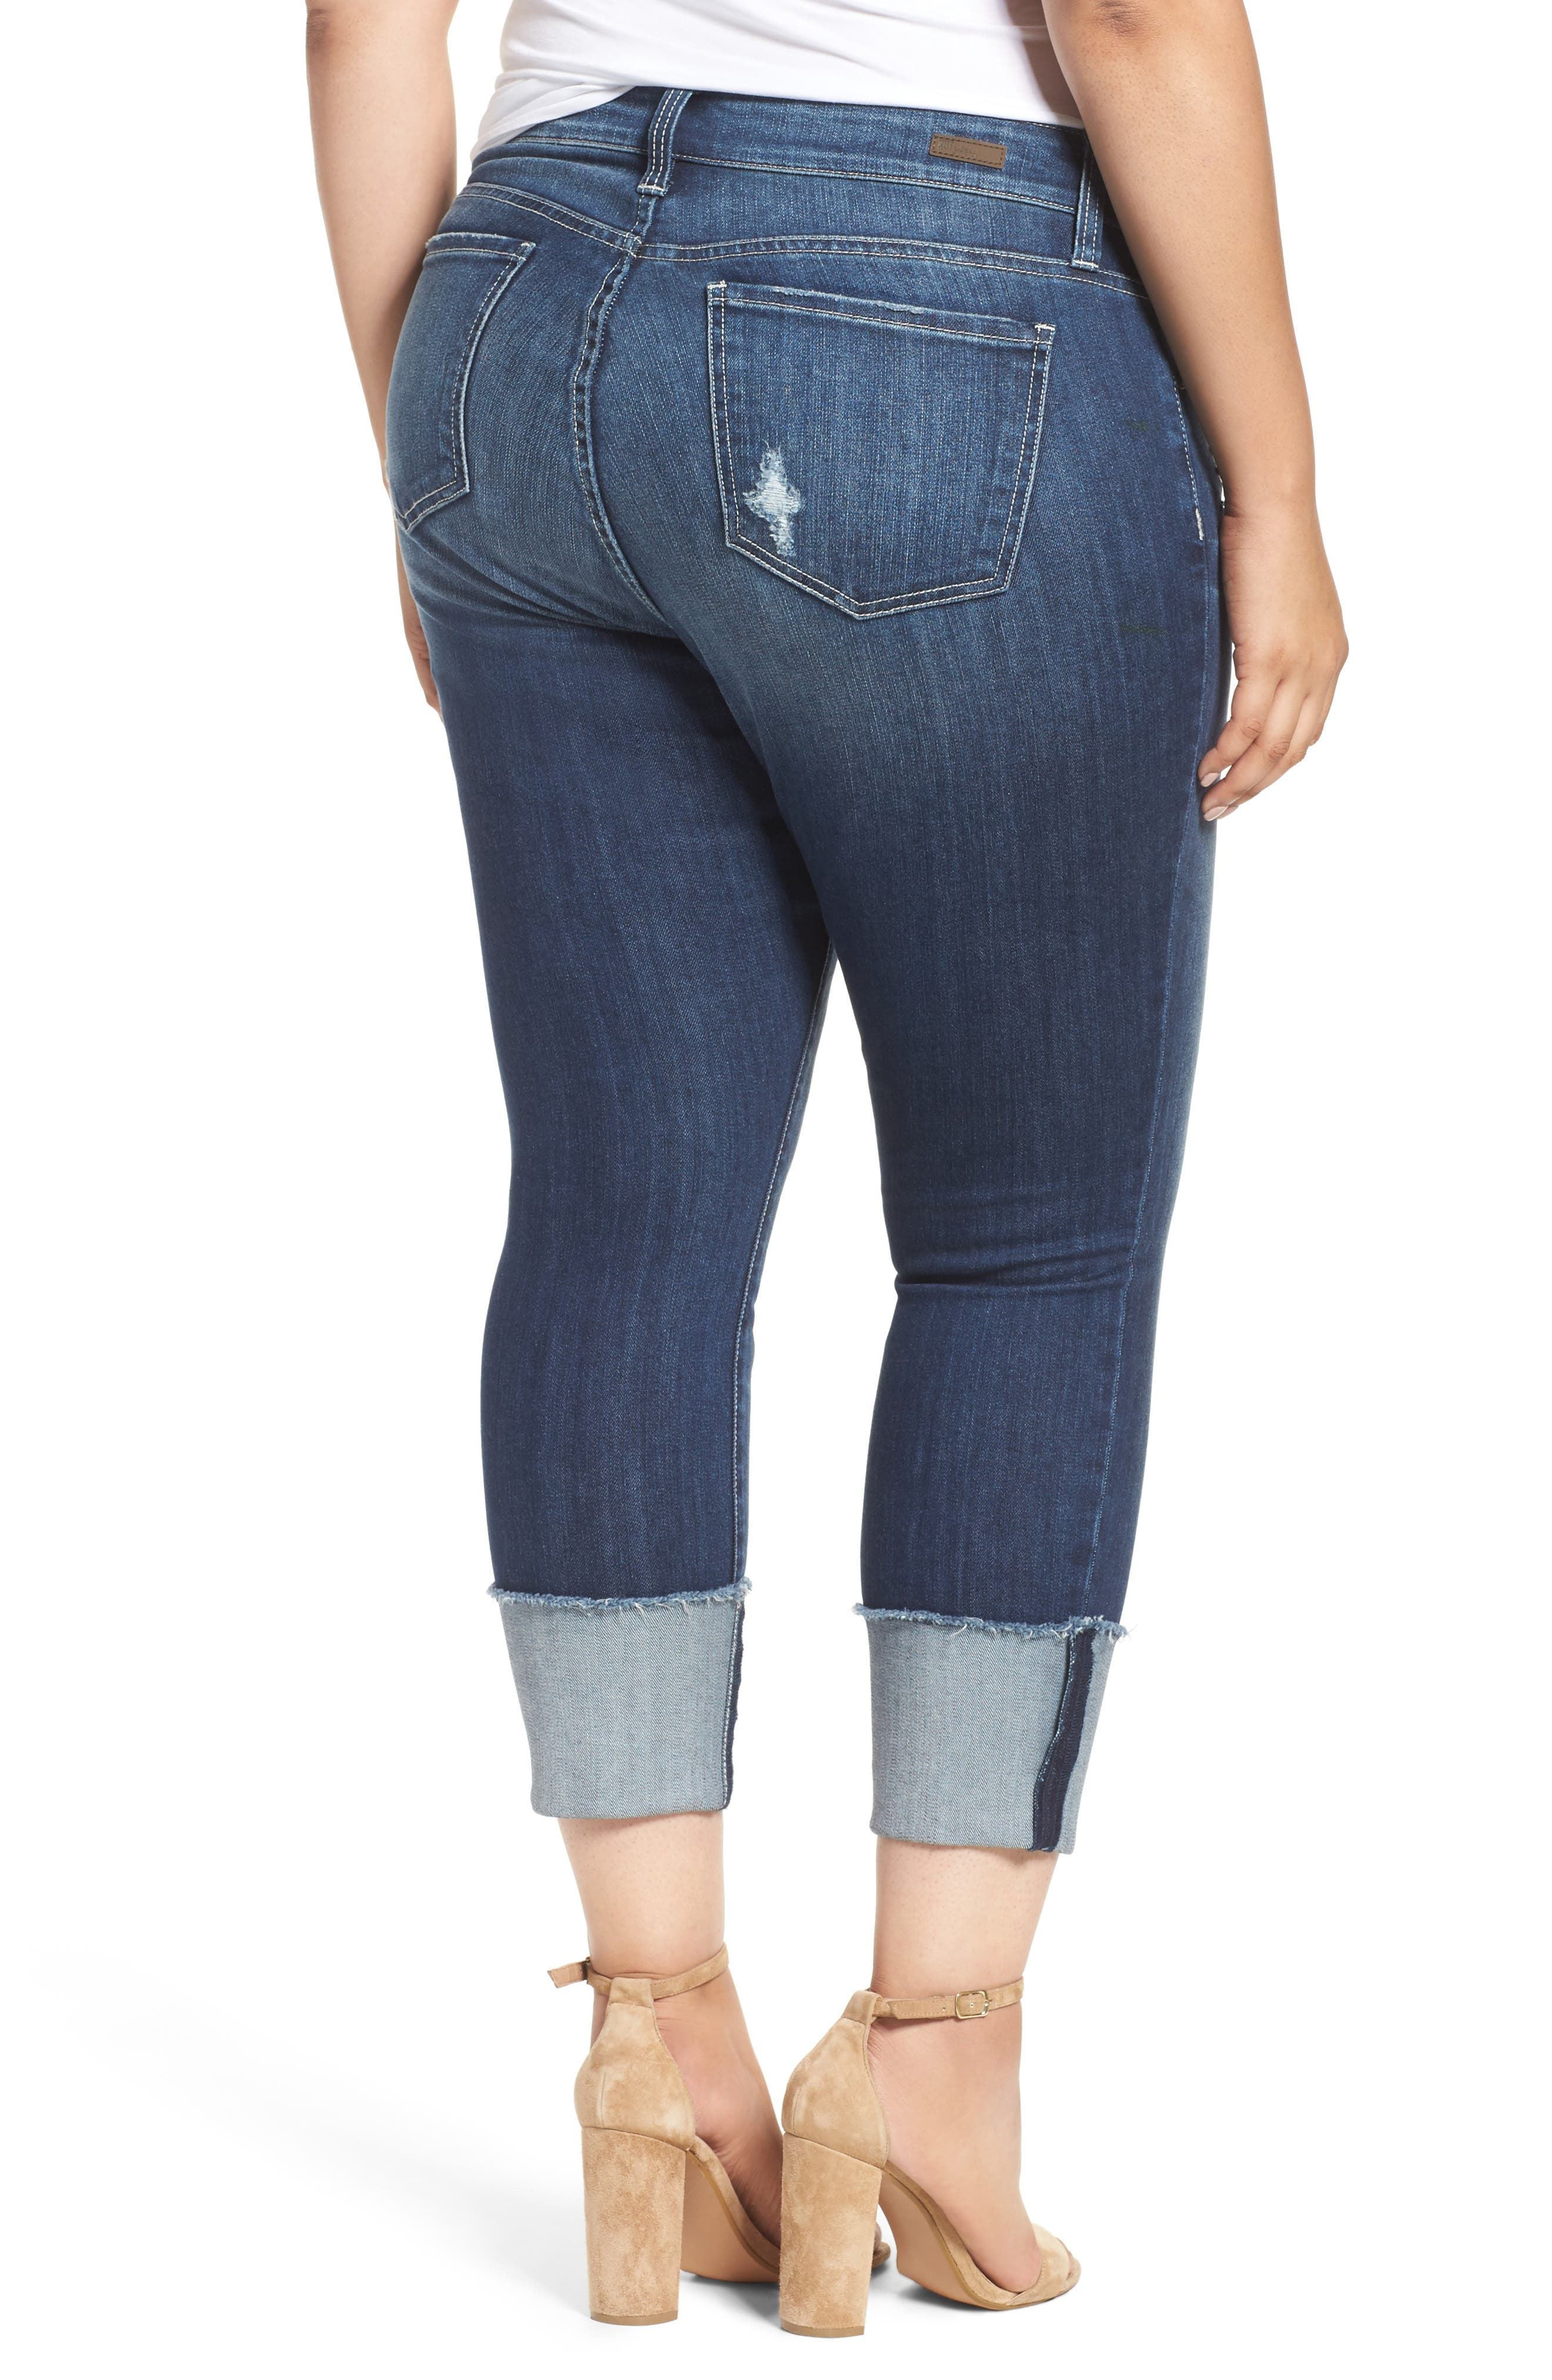 Cameron Cuffed Straight Leg Jeans,                             Alternate thumbnail 2, color,                             400